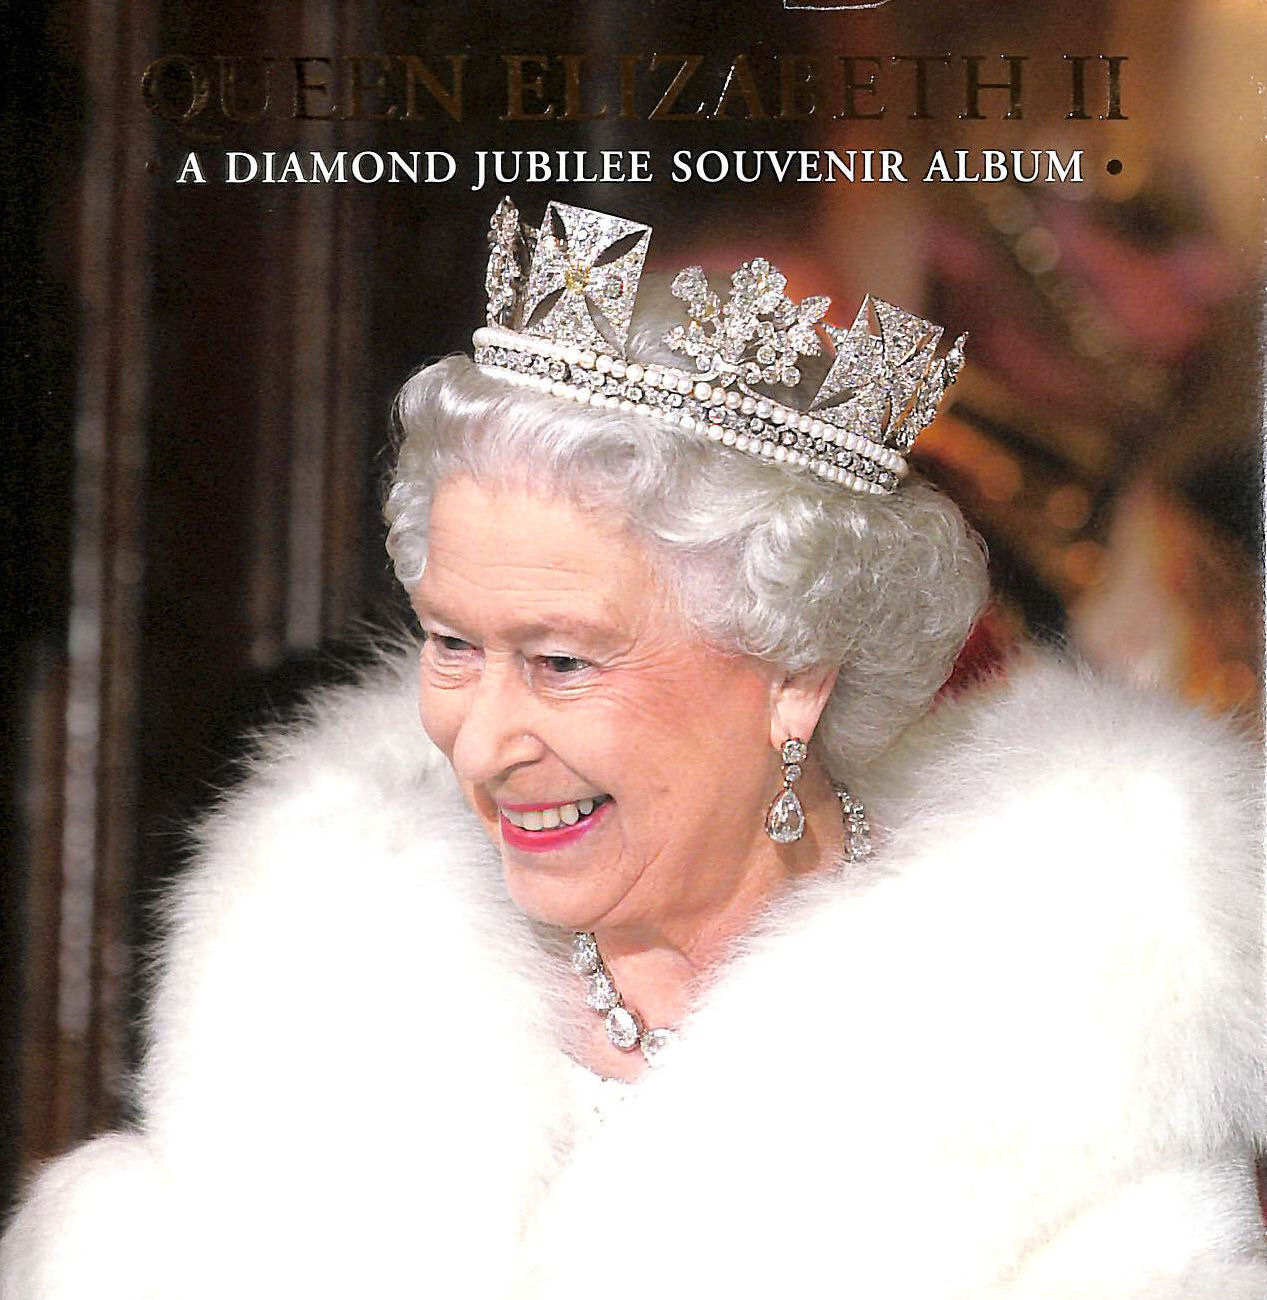 Image for Queen Elizabeth II: A Diamond Jubilee Souvenir Album (Royal Collection Publications - Souvenir Album)